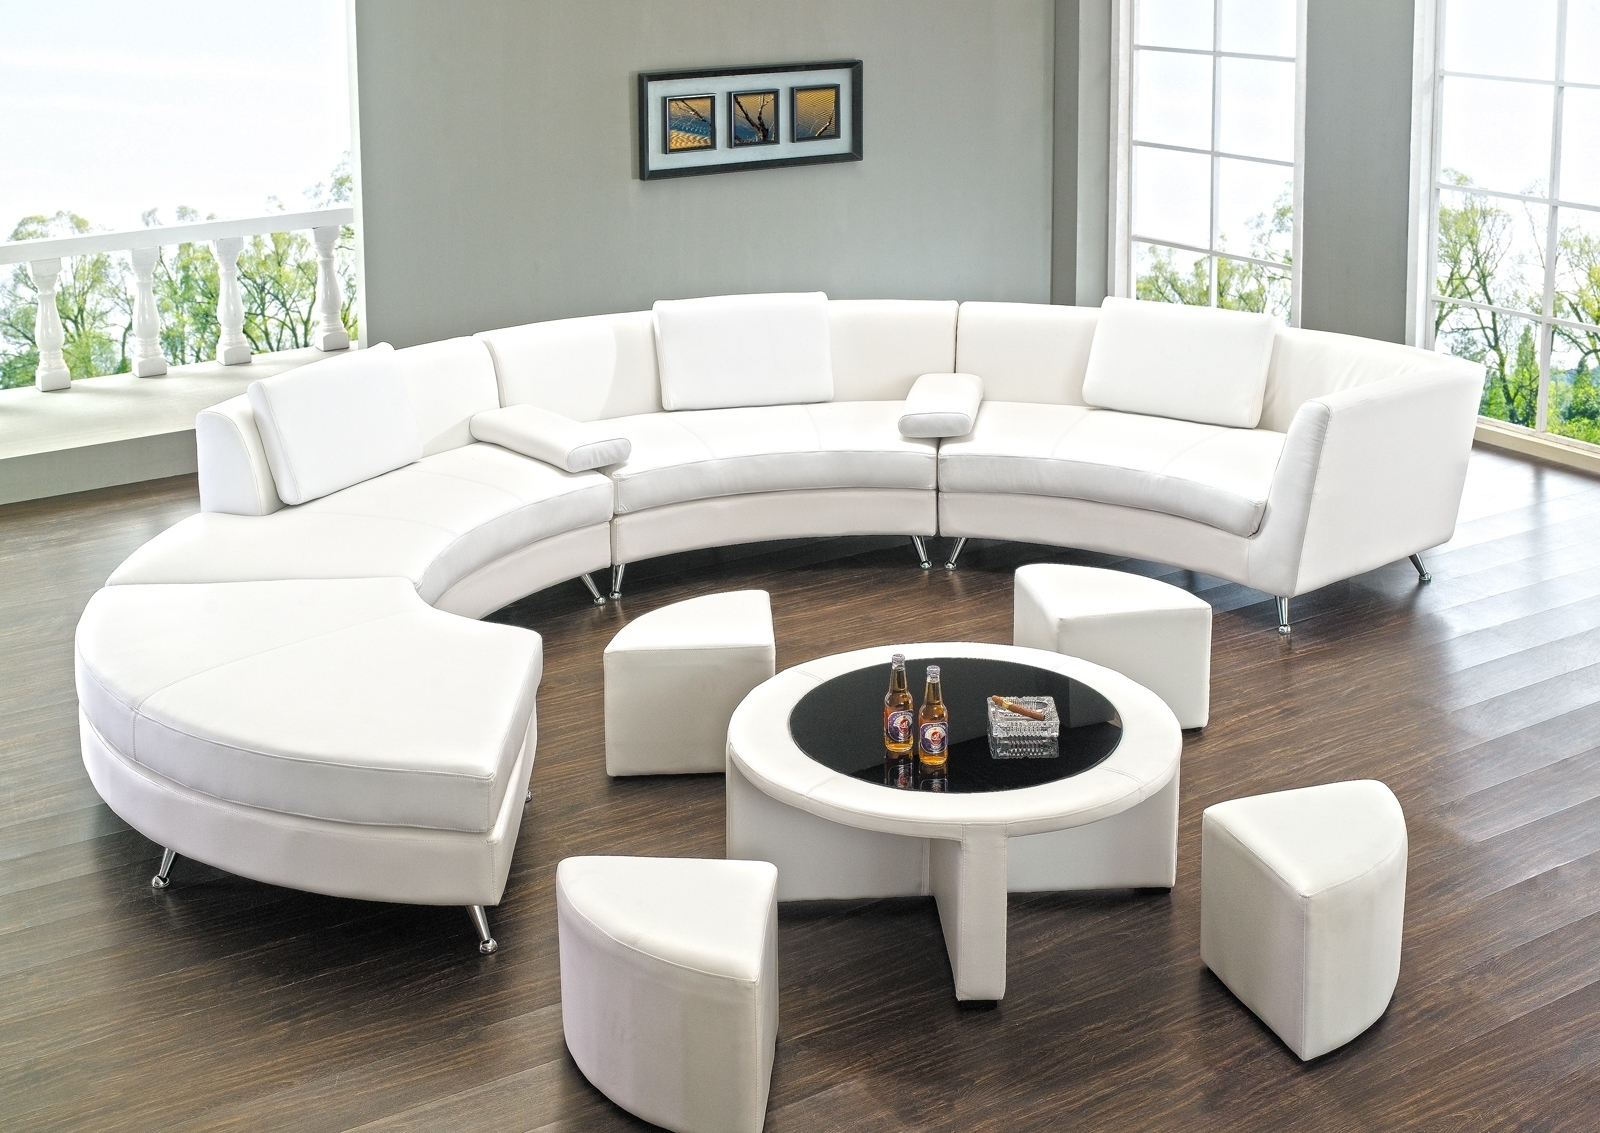 Round Sectional Sofa Has One Of The Best Kind Of Other Is Within Best And Newest Round Sectional Sofas (View 3 of 20)